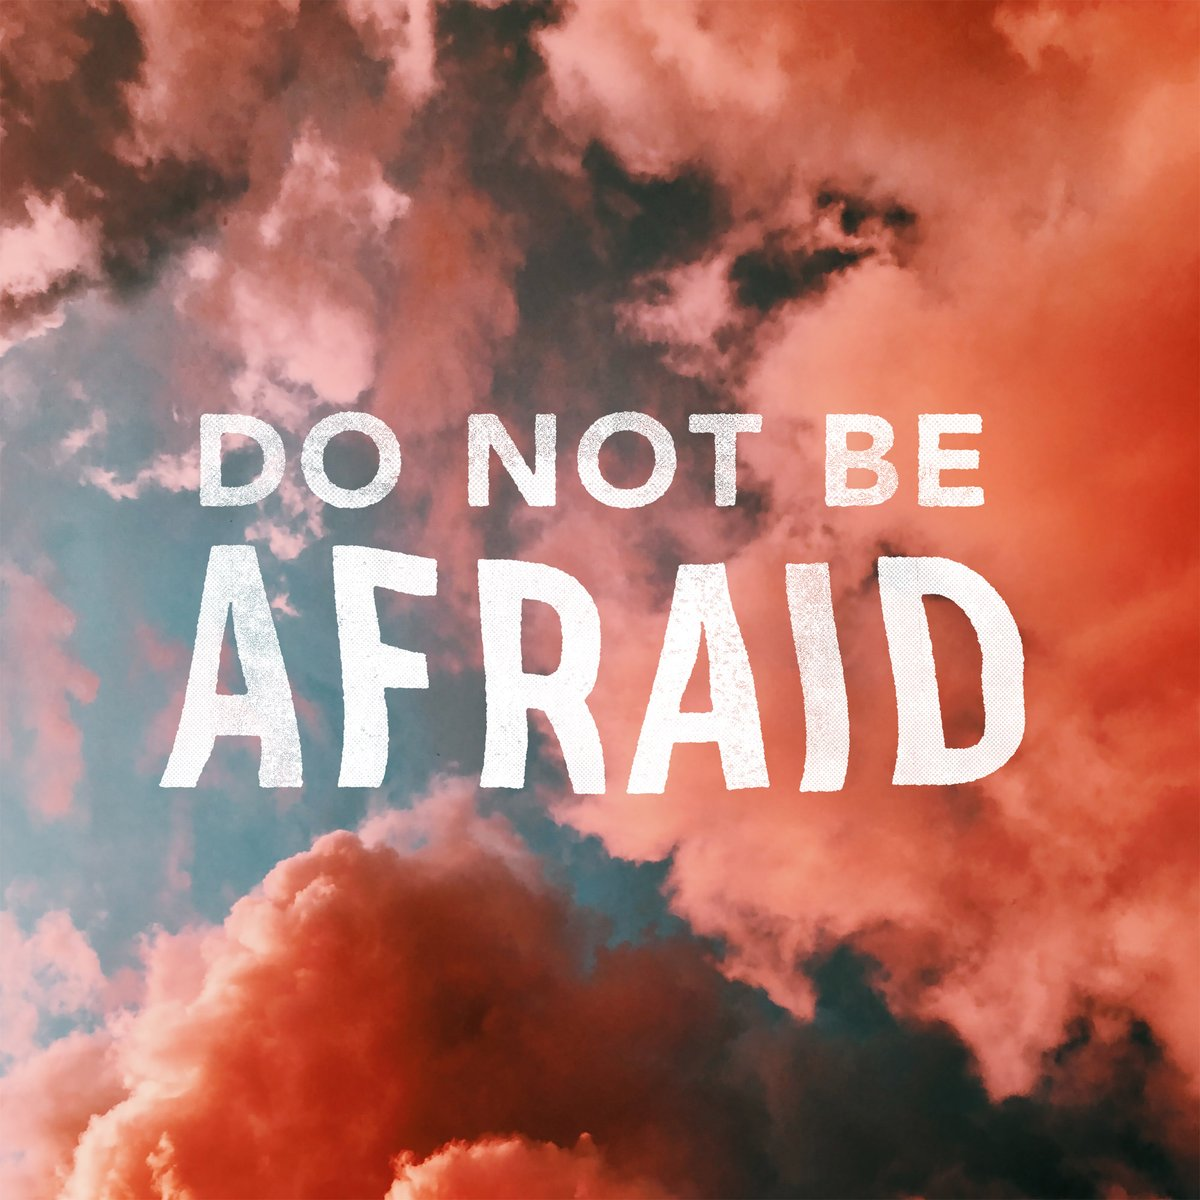 God has not given us a spirit of fear…  #Godwithus #nofear #dontbeafraid #leanonJesus #thougthfulthursday #thursdaythoughts https://t.co/Uks8fF2Cax